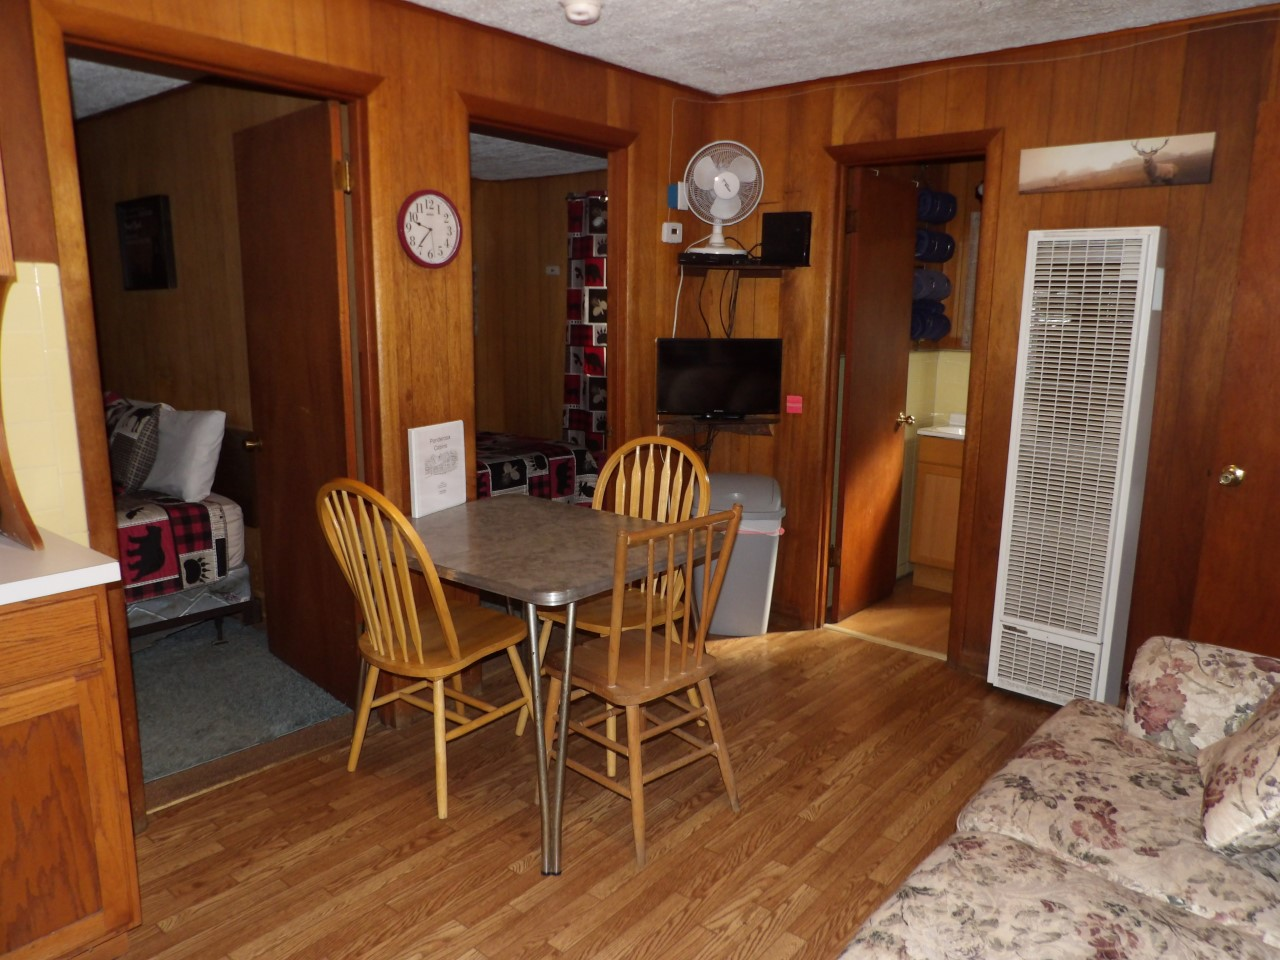 entrance to bedrooms with table and chairs